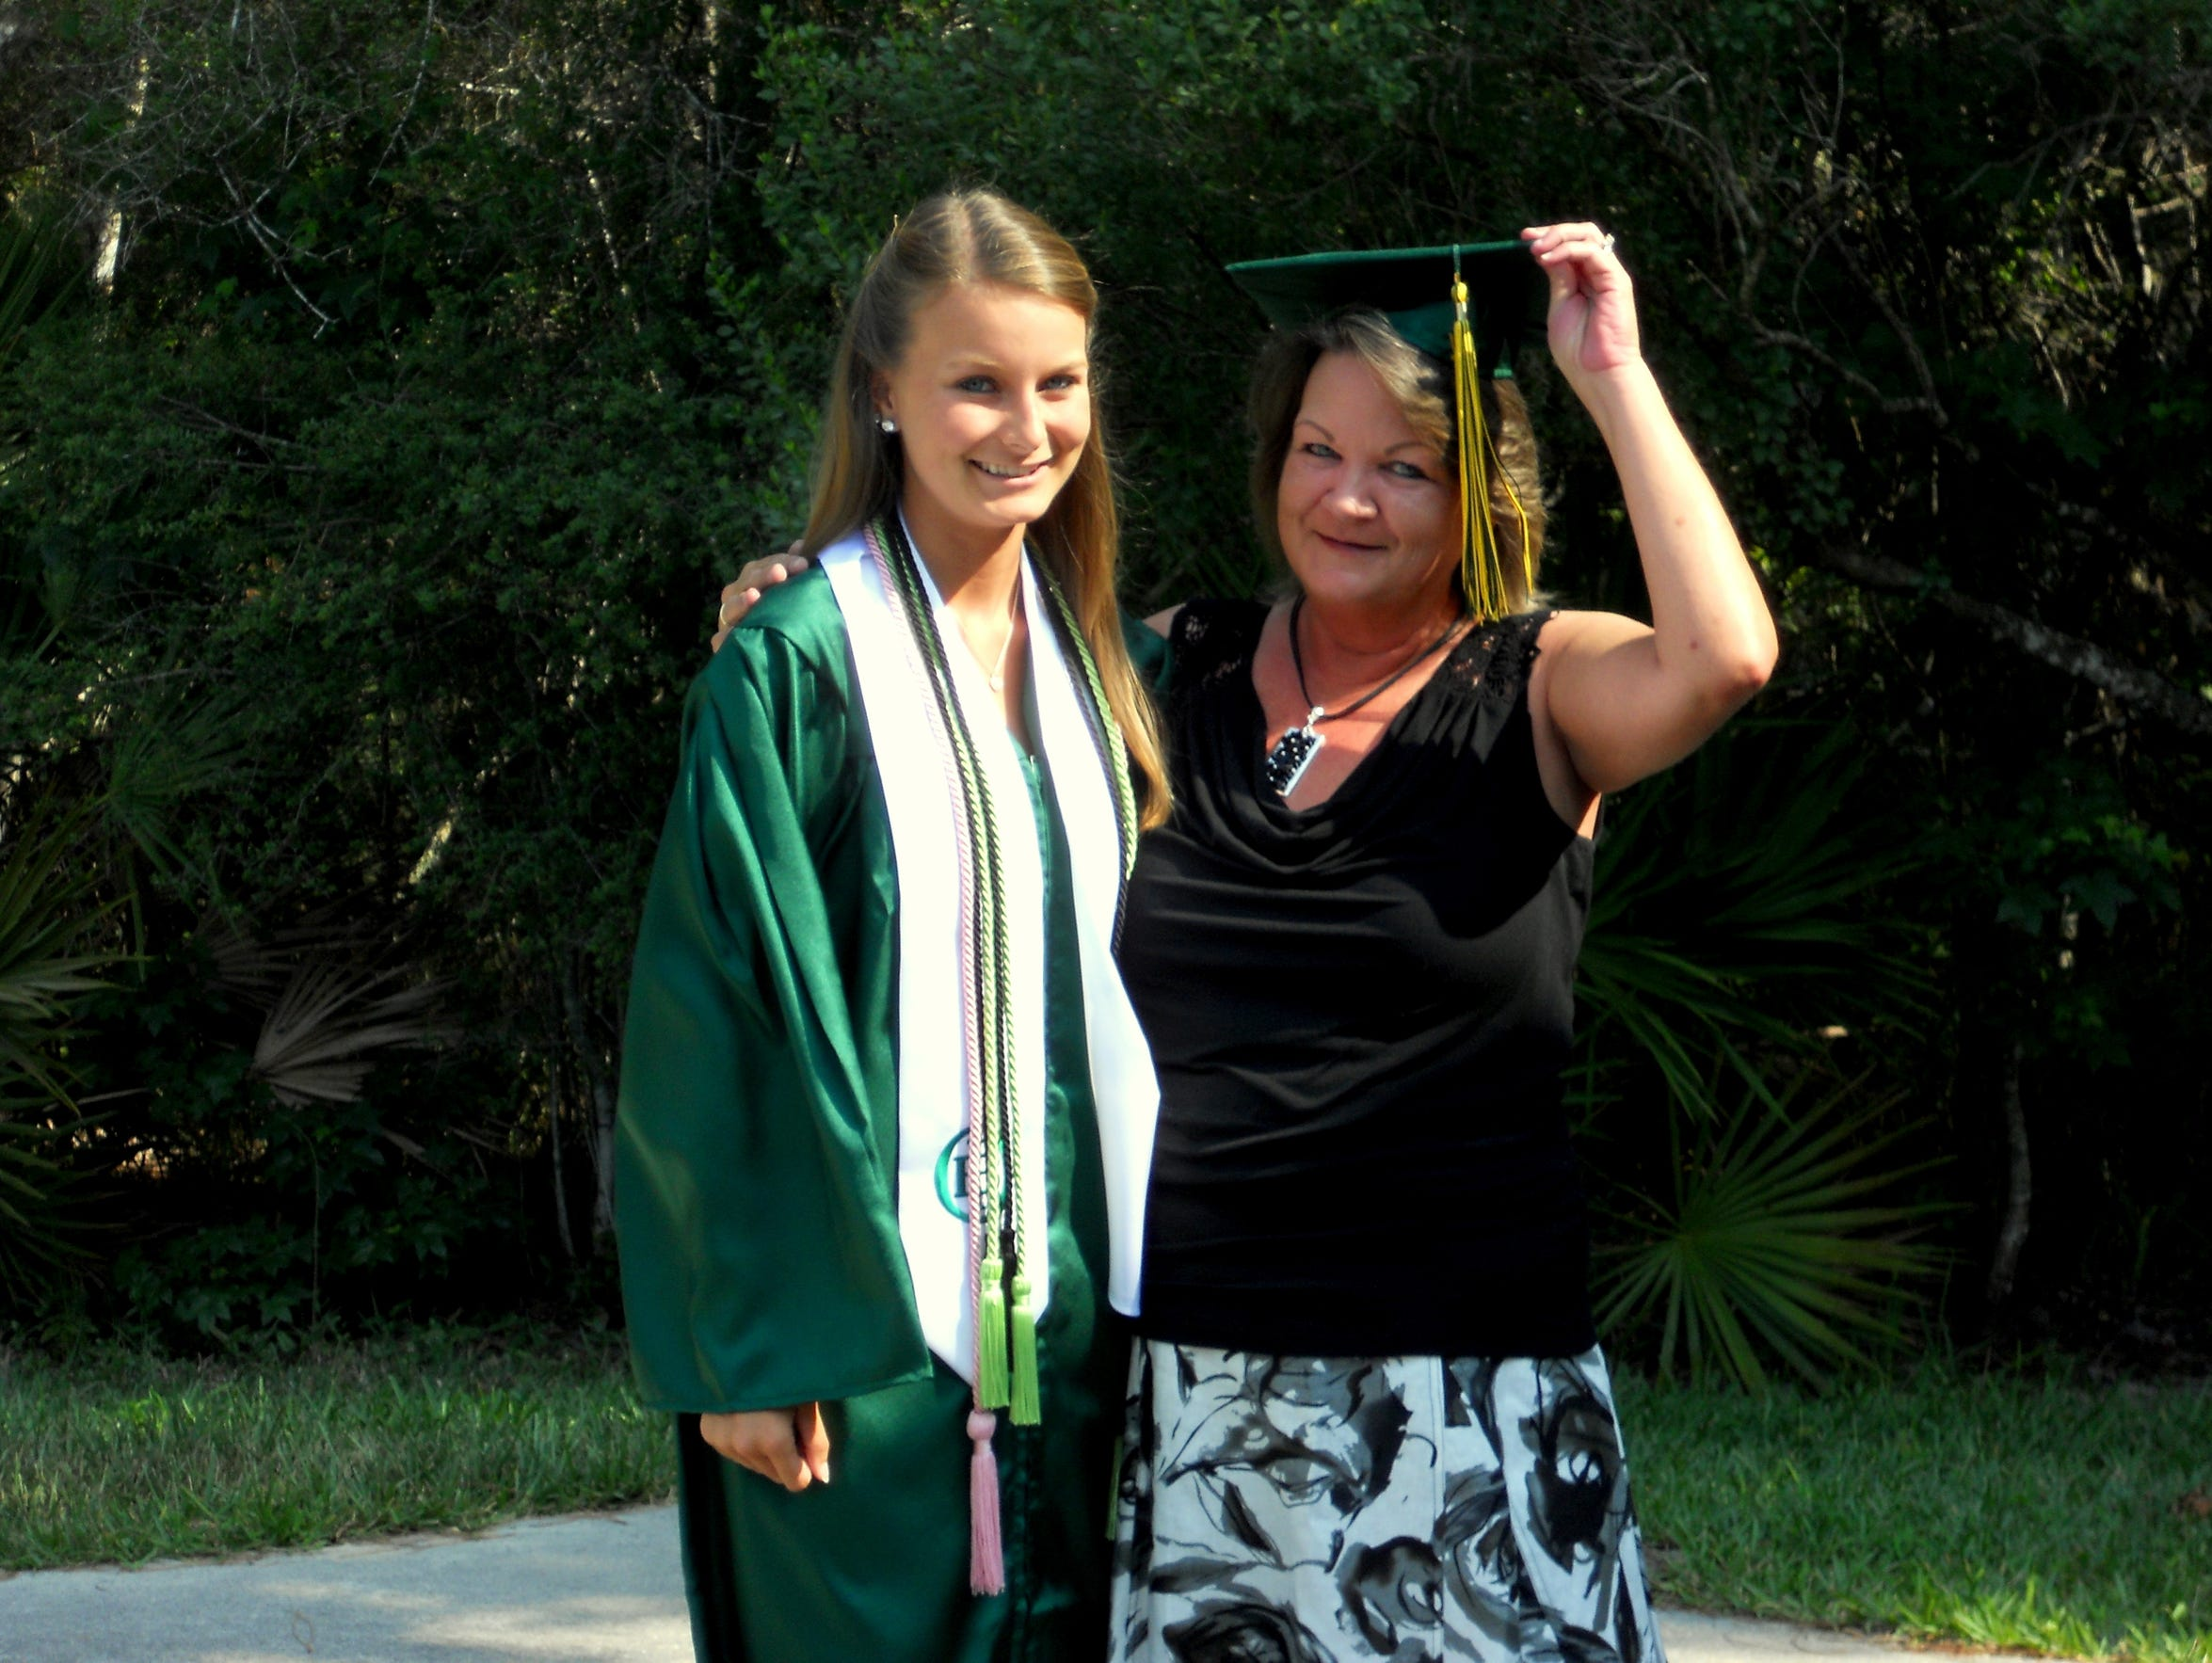 My mom and I at my high school graduation. She never